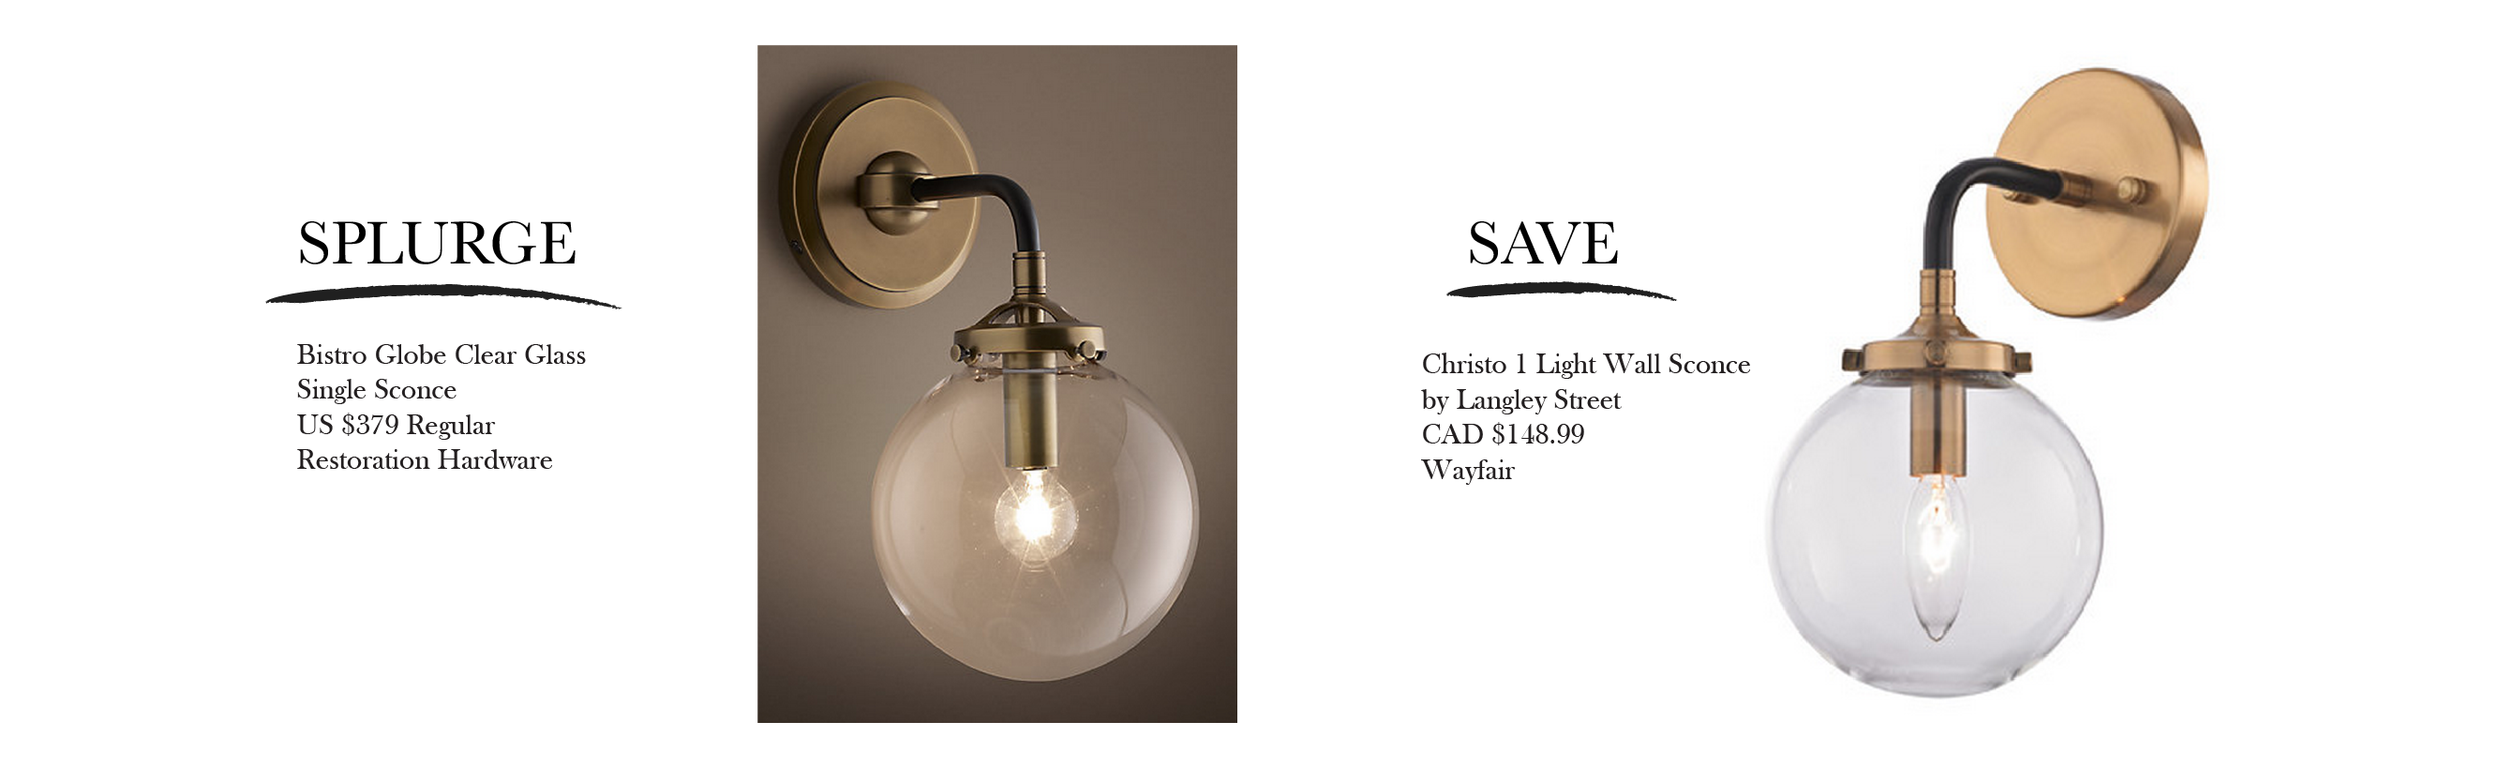 These lights are so similar... and check out the incredible savings!